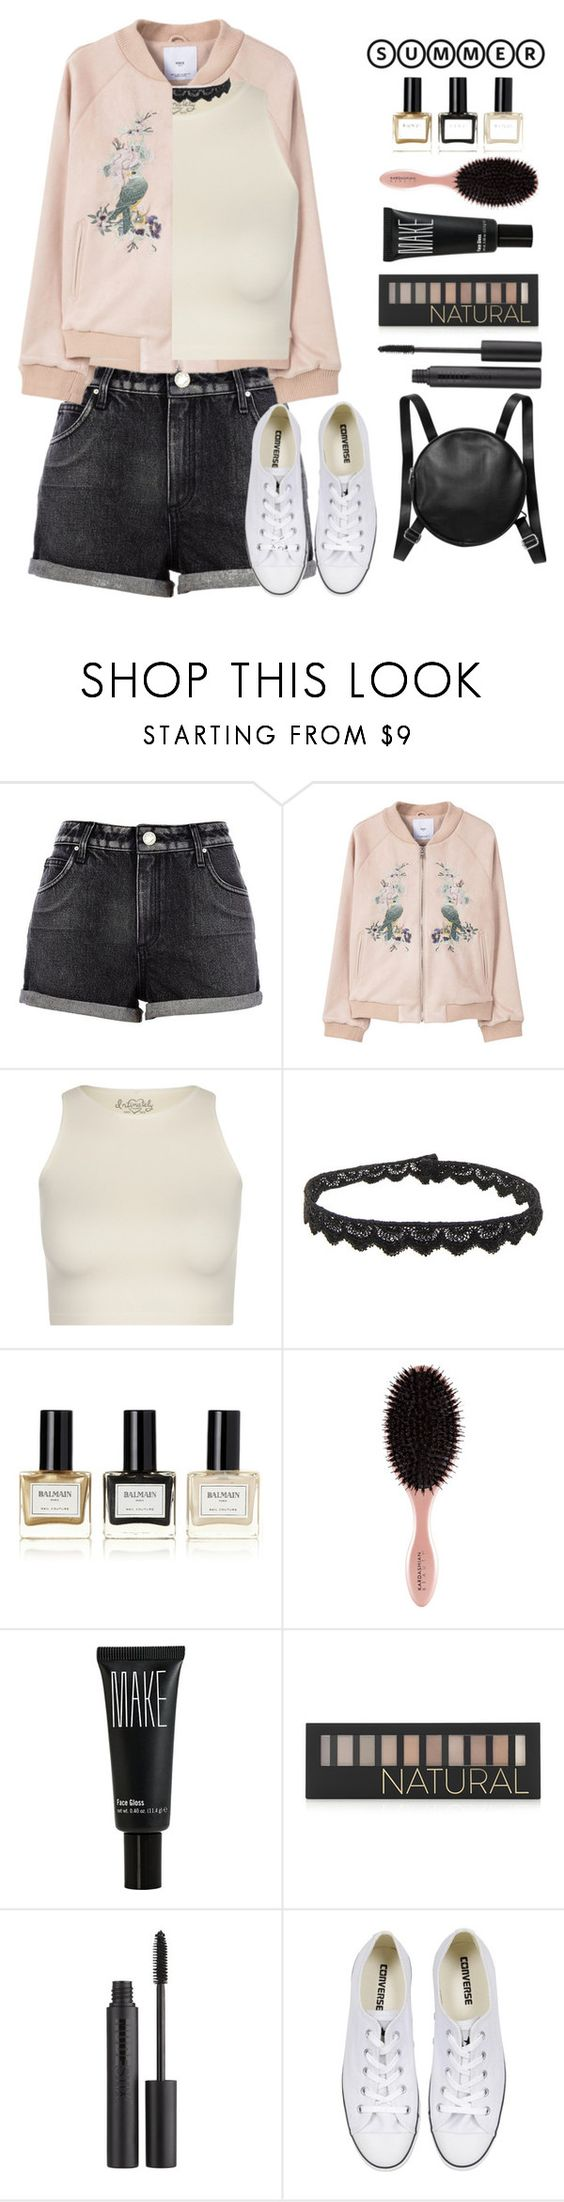 """Bomber Jacket"" by patricia-pfa ❤ liked on Polyvore featuring River Island, MANGO, Free People, Yves Saint Laurent, Balmain, Make, Forever 21, Nudestix, Converse and Monki"